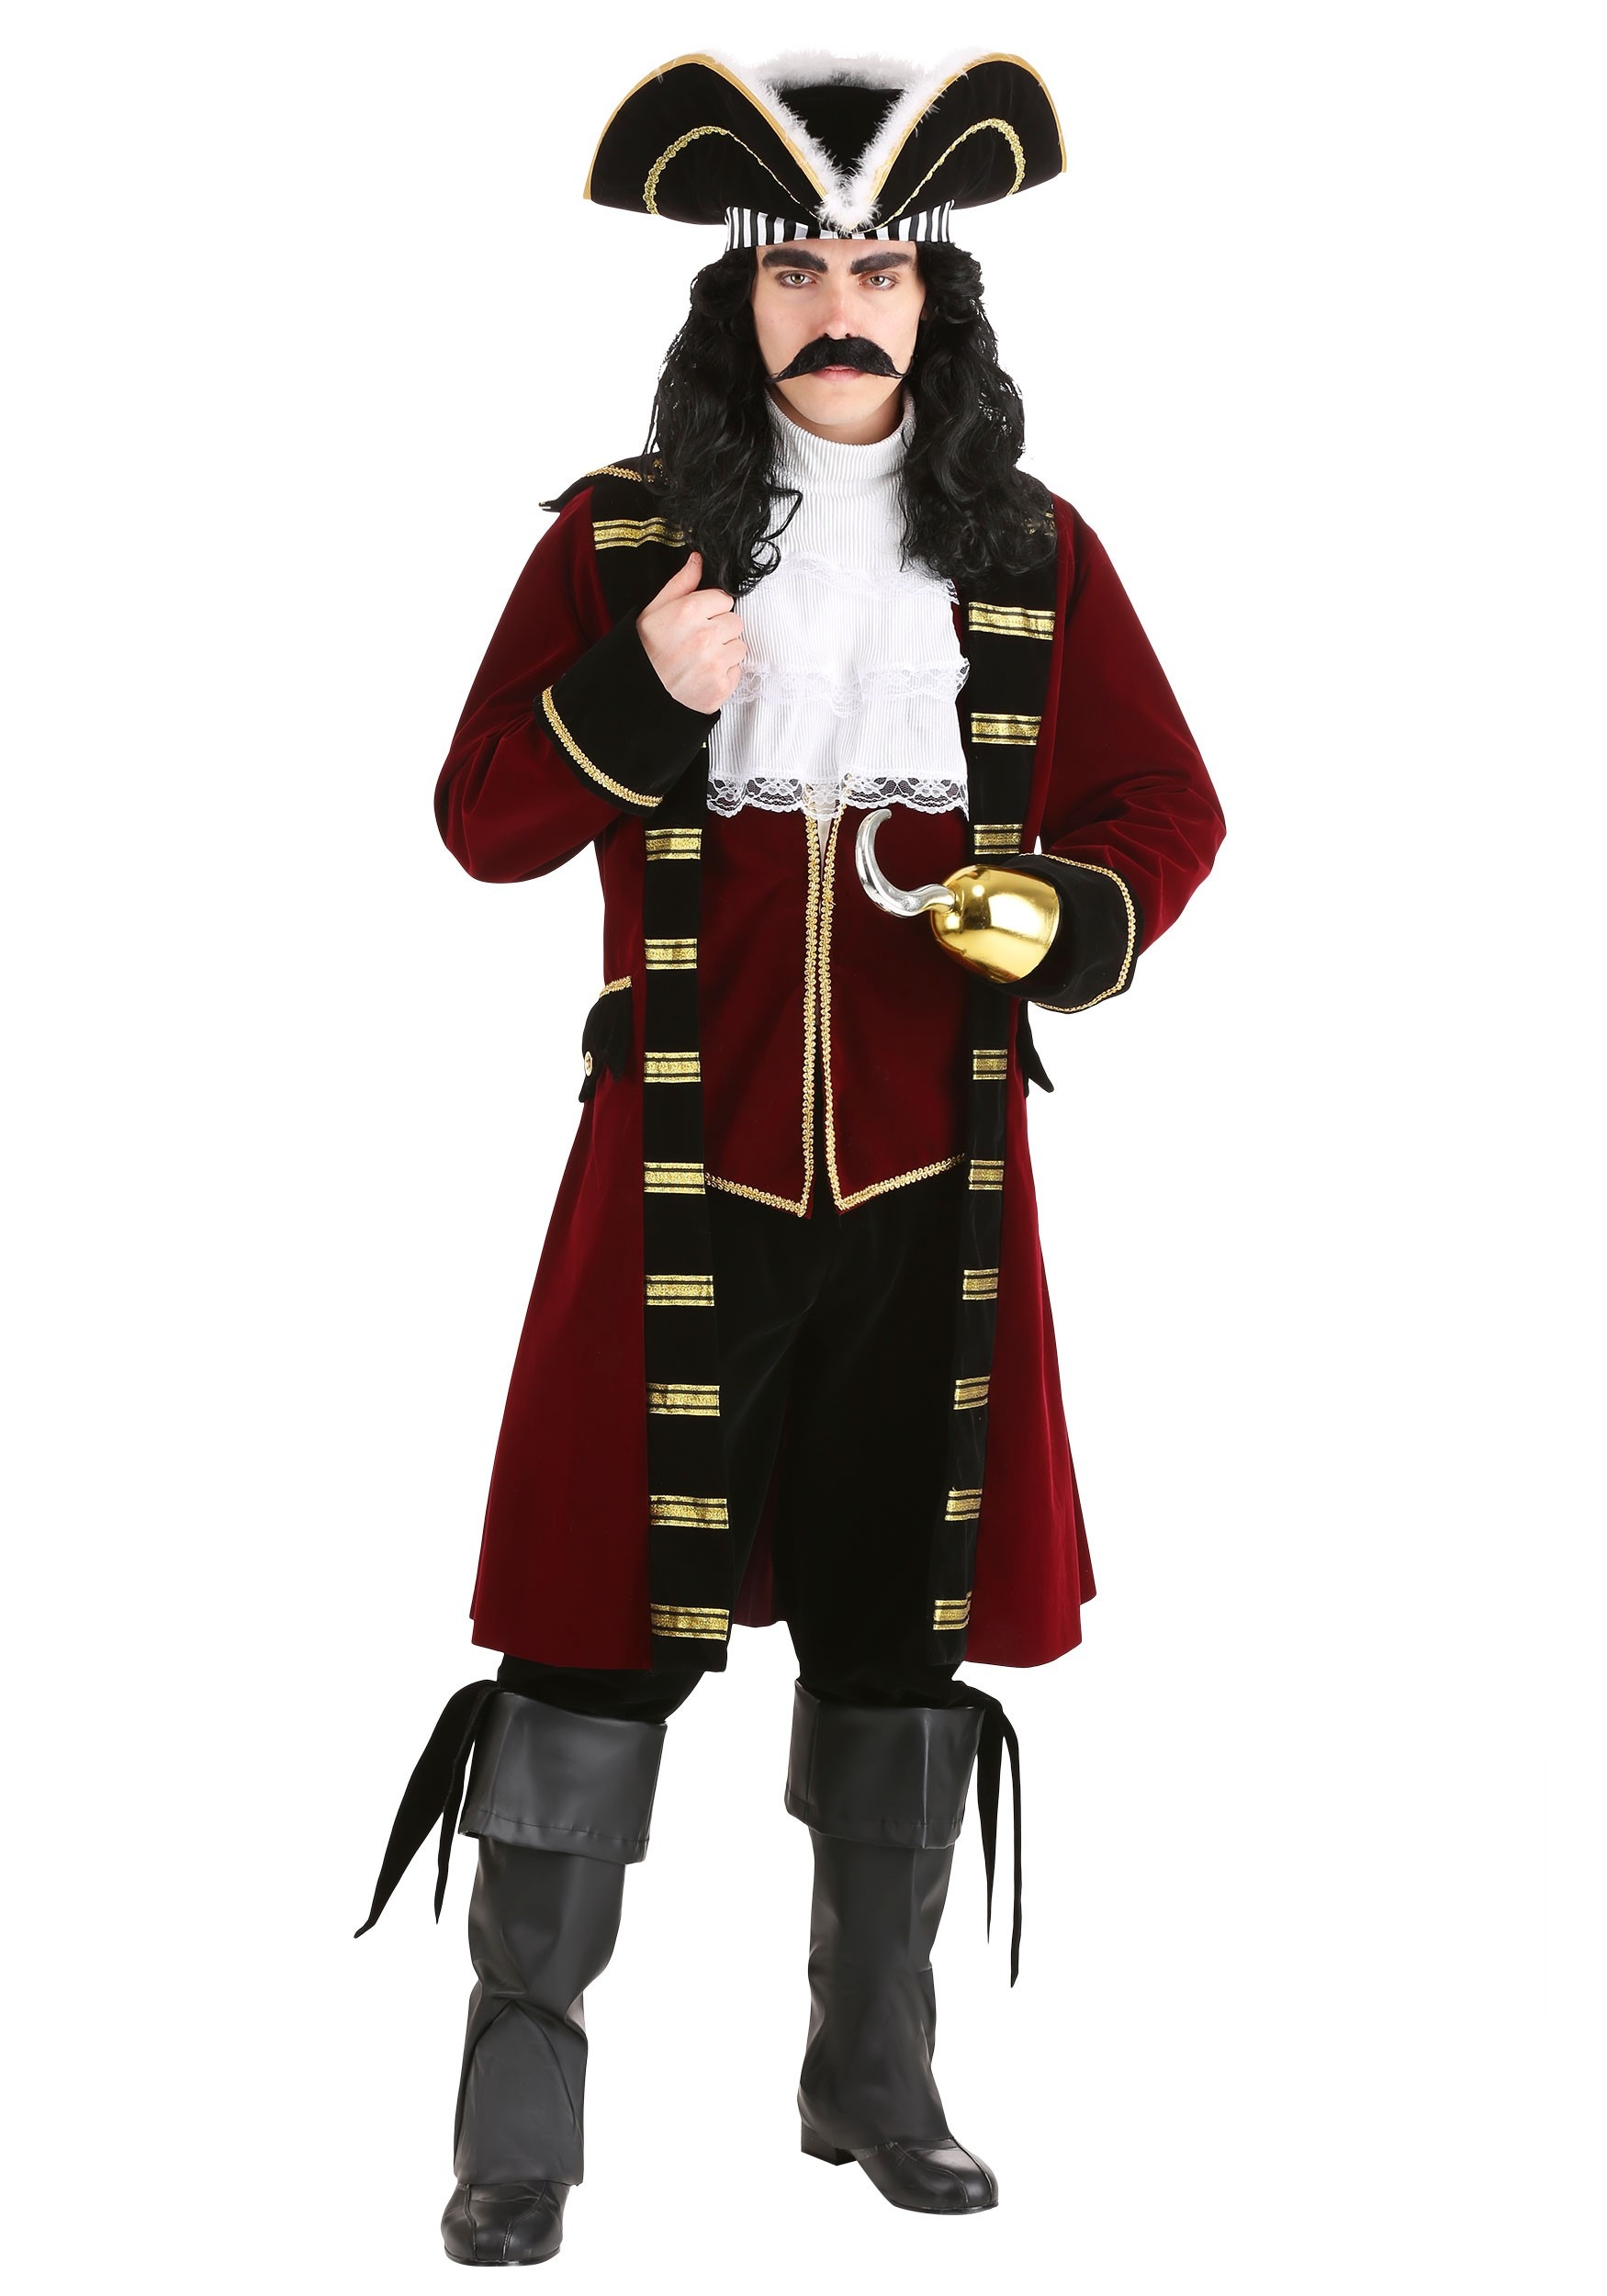 deluxe captain hook costume - Halloween Stores In Fayetteville Ar